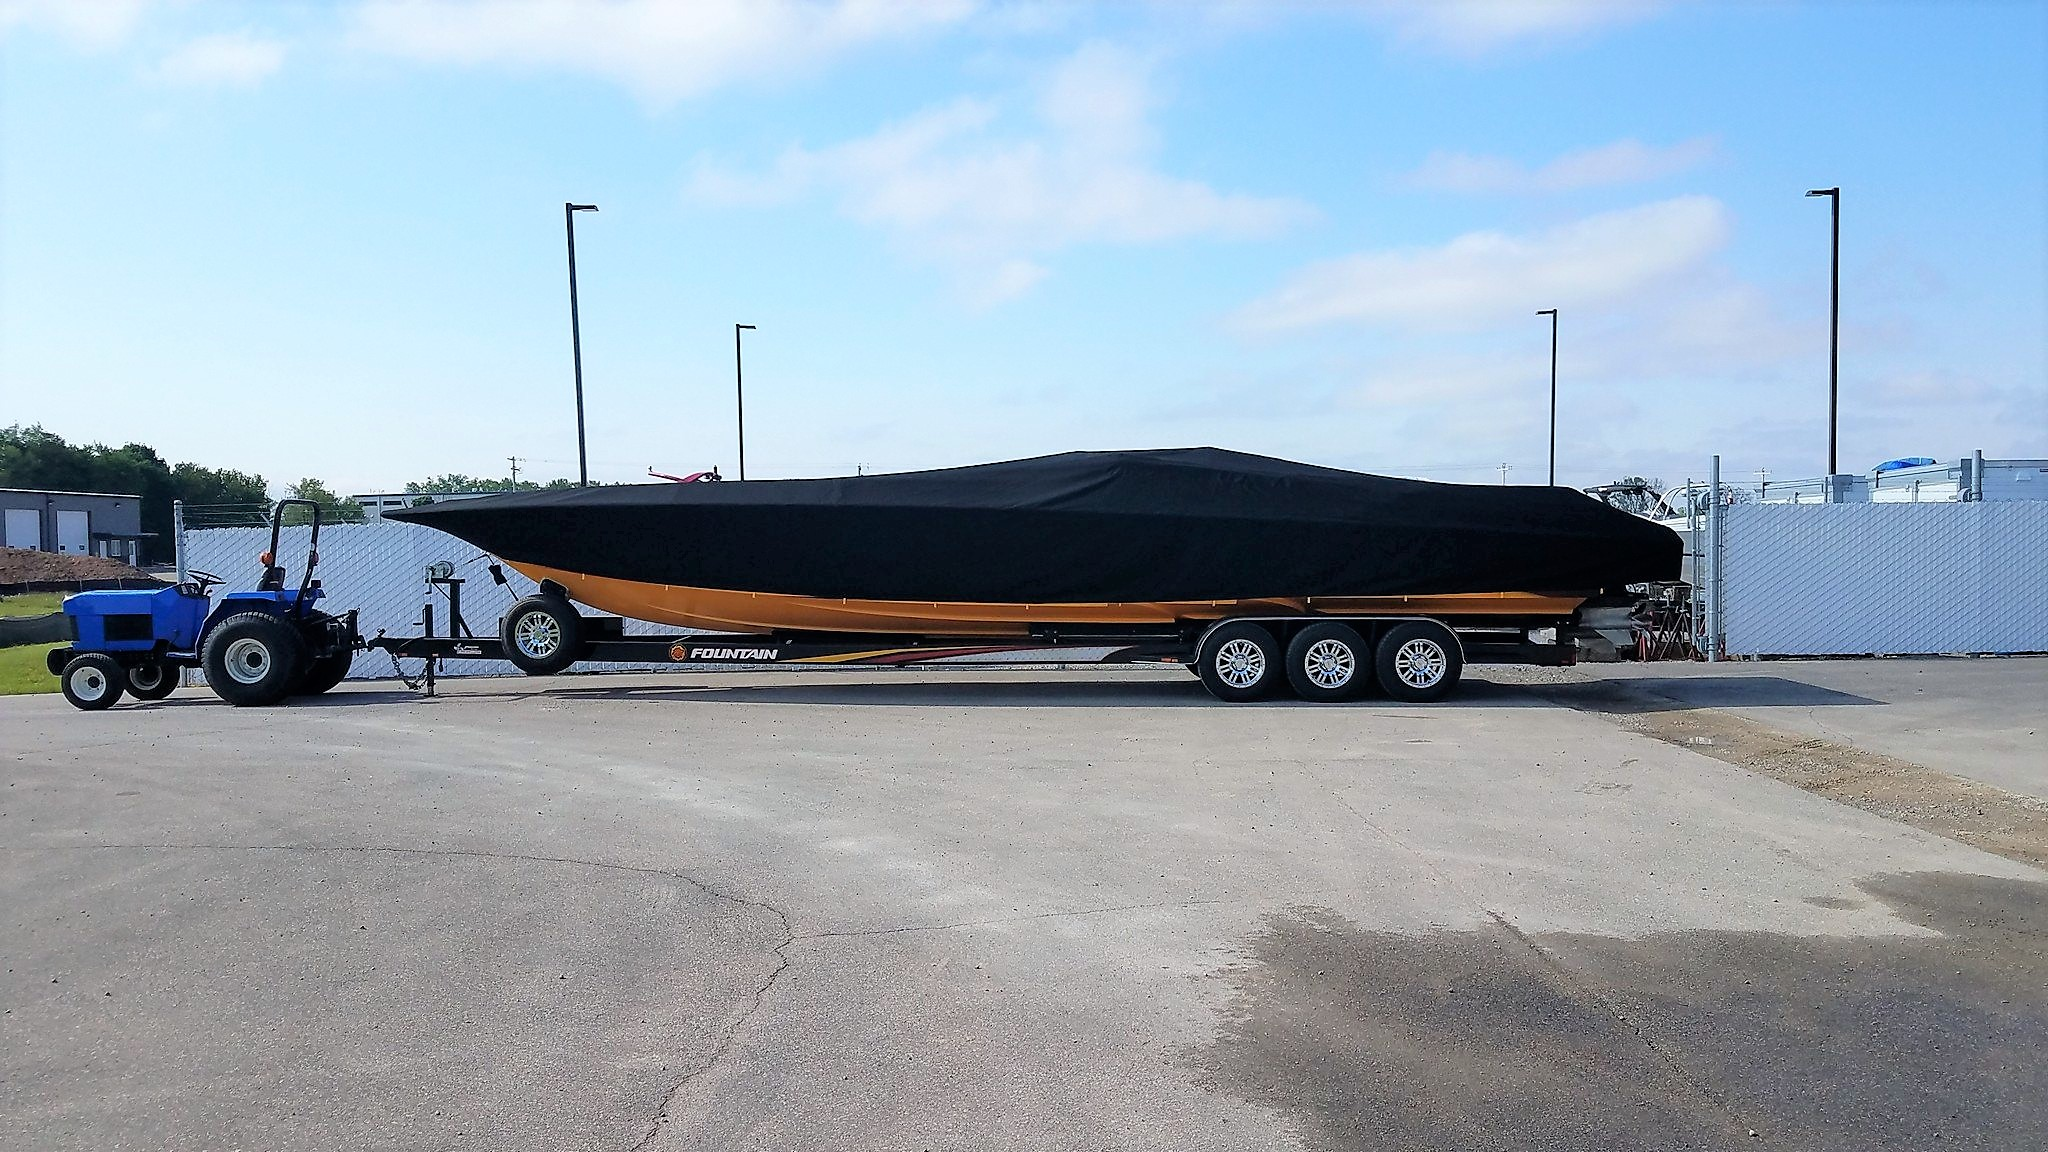 Custom Sunbrella Boat Cover: Fountain 42' Lightning mooring cover with custom drops